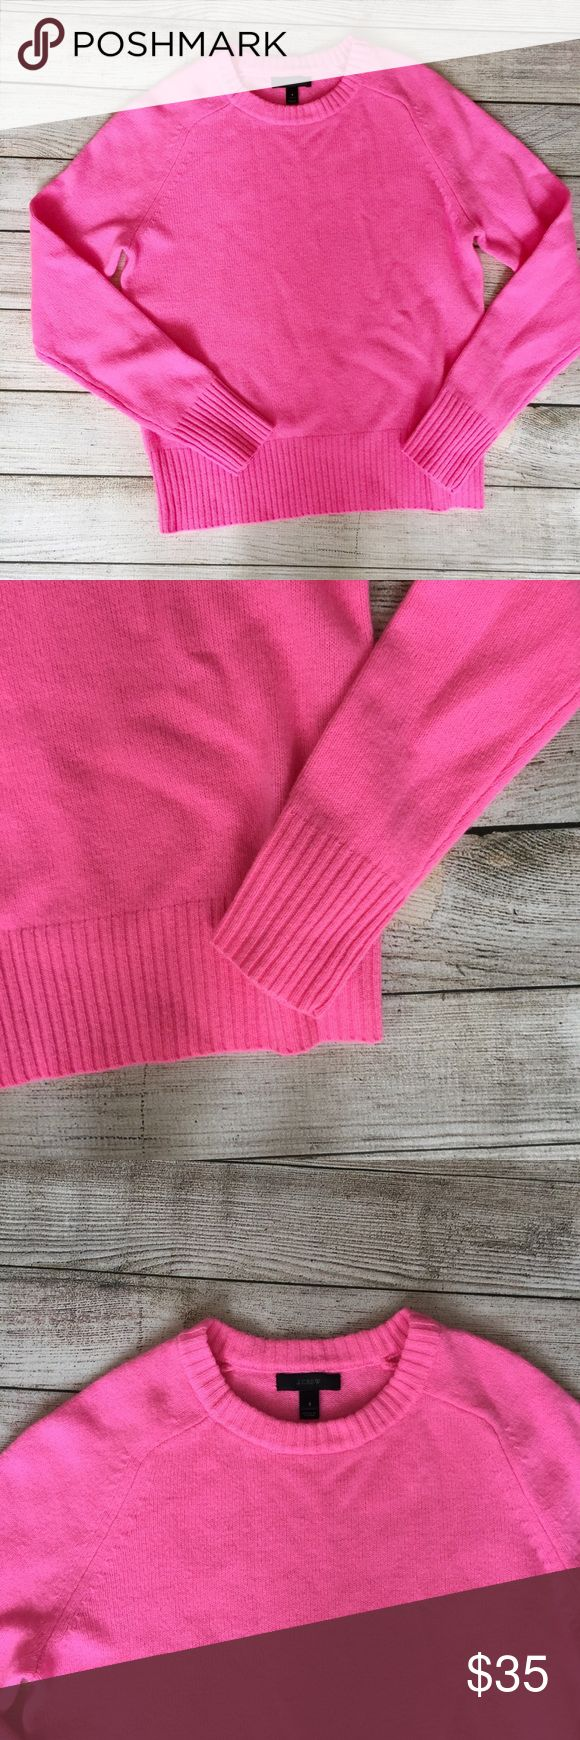 """J. Crew Pink Wool Holly Sweater 100% full. Semi fitted. Hits at hip. Length 22.5"""" shoulder to hem. Excellent condition. 🚫NO TRADES/NO MODELING🚫✅BUNDLE TO SAVE ✅ J. Crew Sweaters Crew & Scoop Necks"""